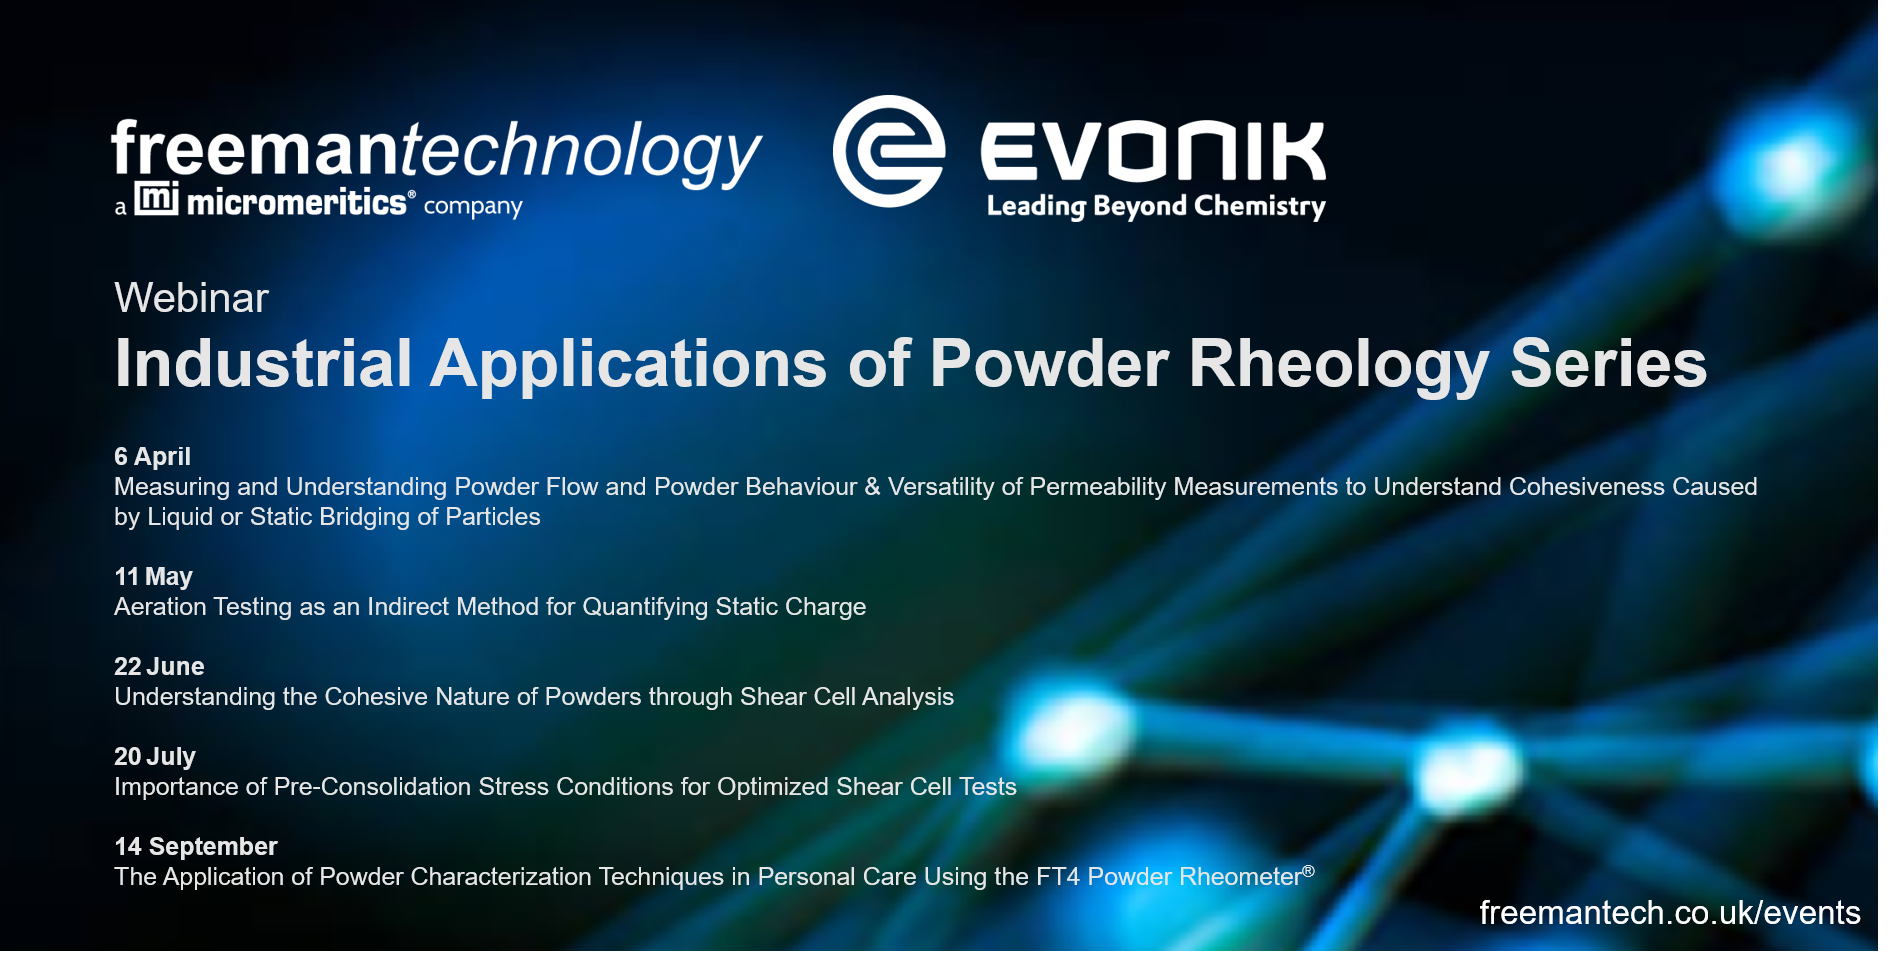 Industrial Applications of Powder Rheology Webinar Series